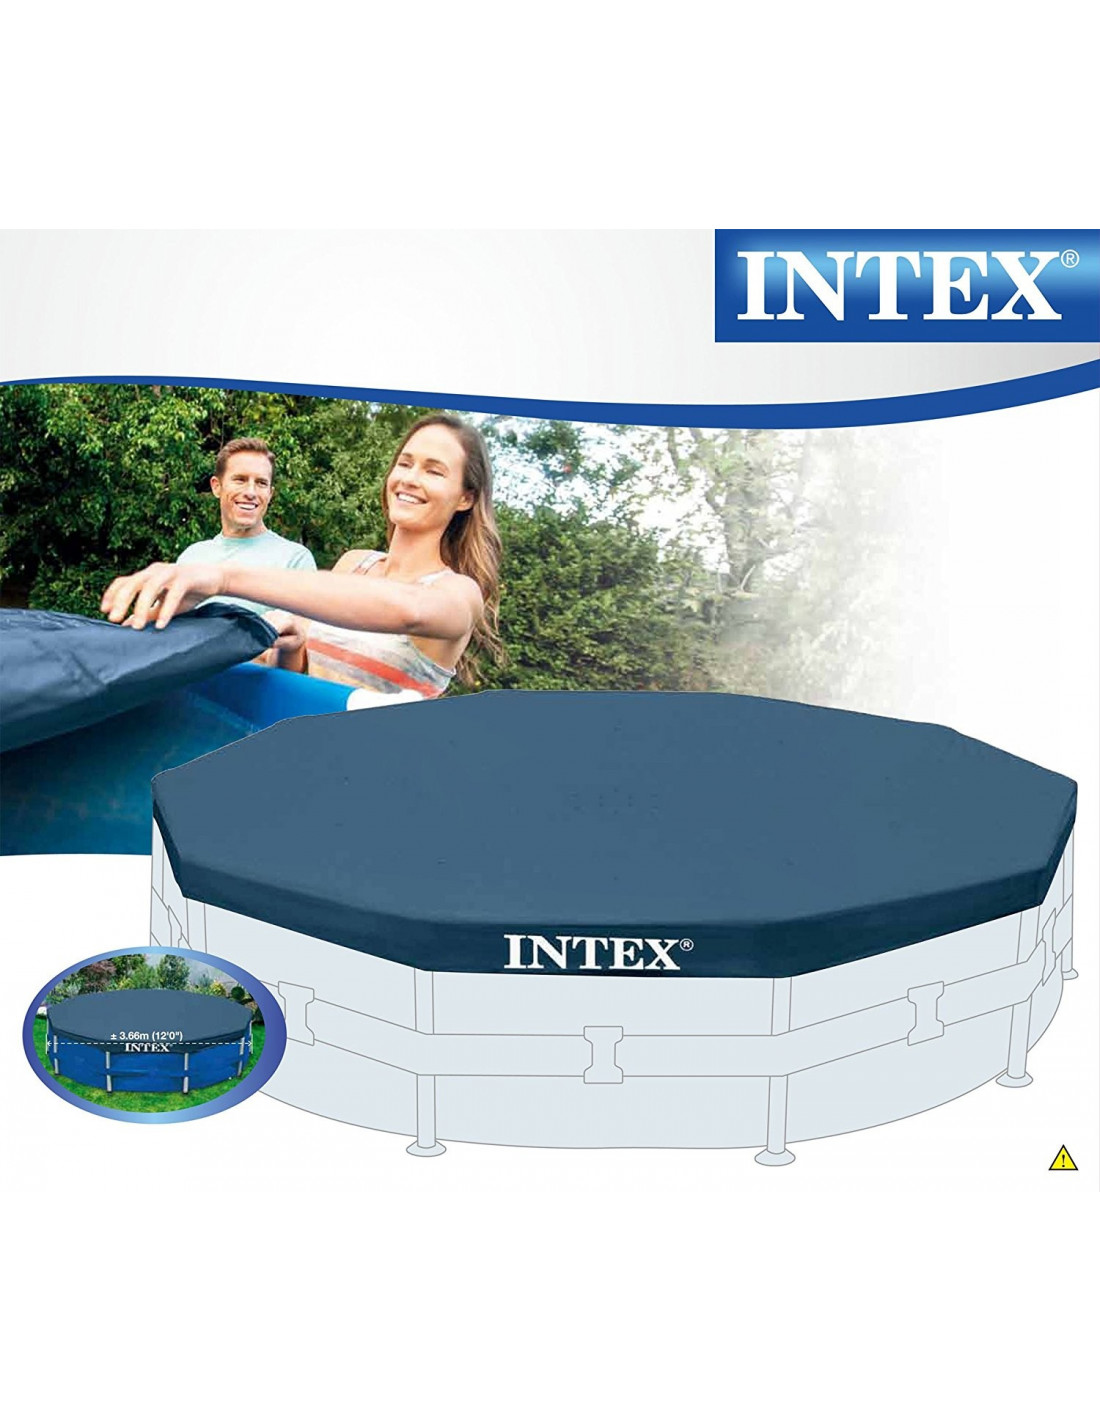 Bache de piscine intex intex b che pour piscine ronde for Bache piscine intex